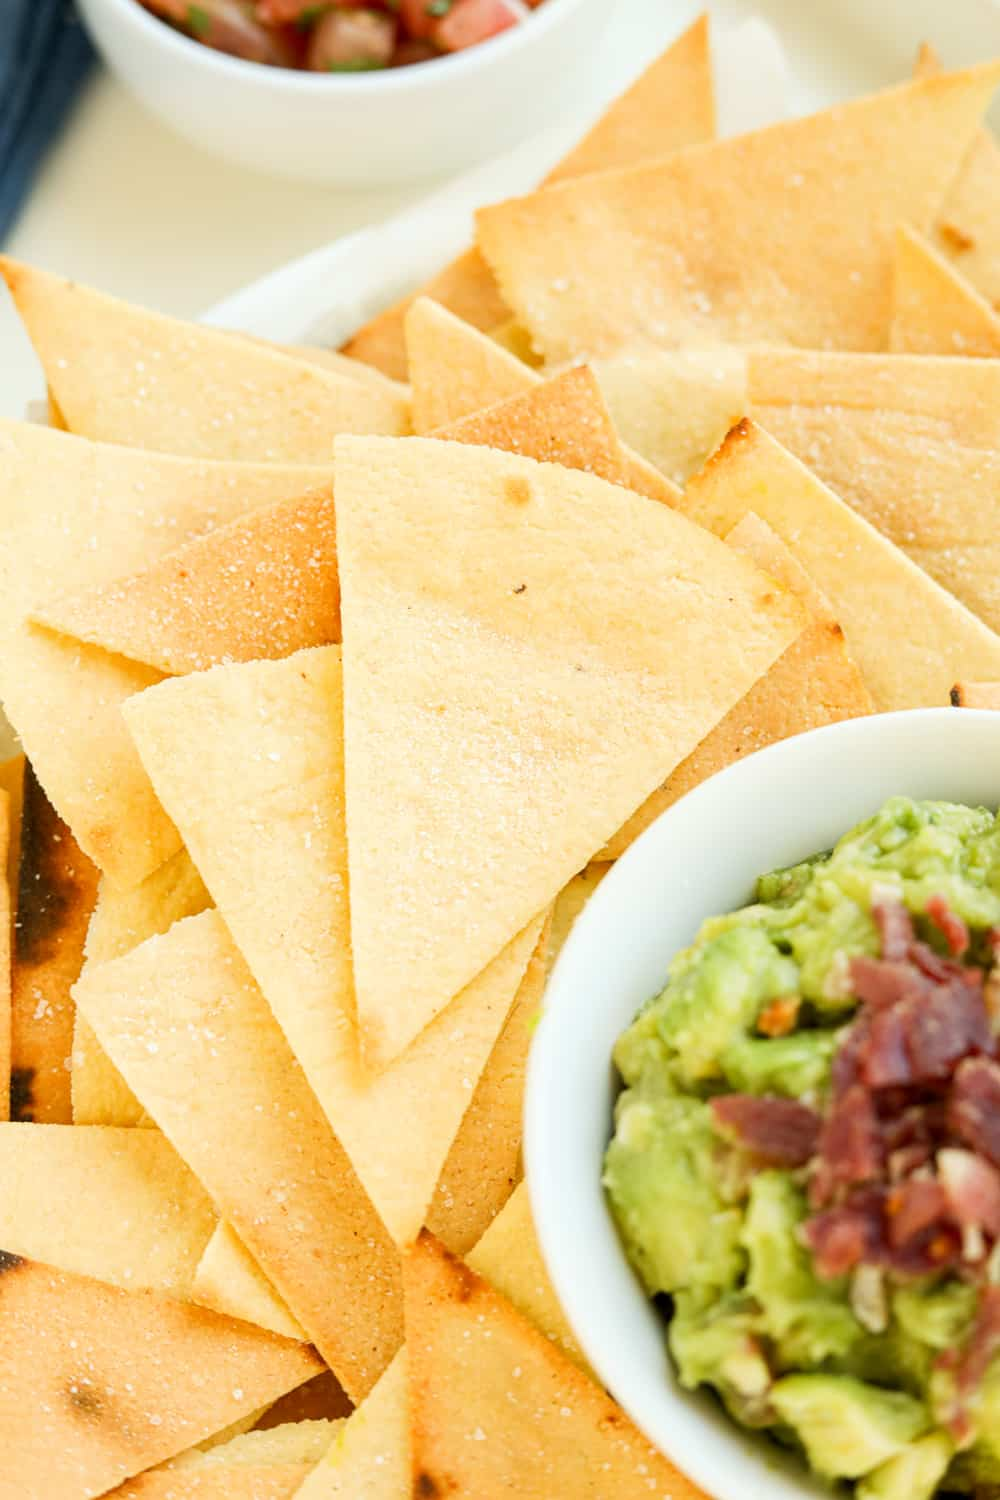 Tortilla chips stacked on top of one another next to guacamole.